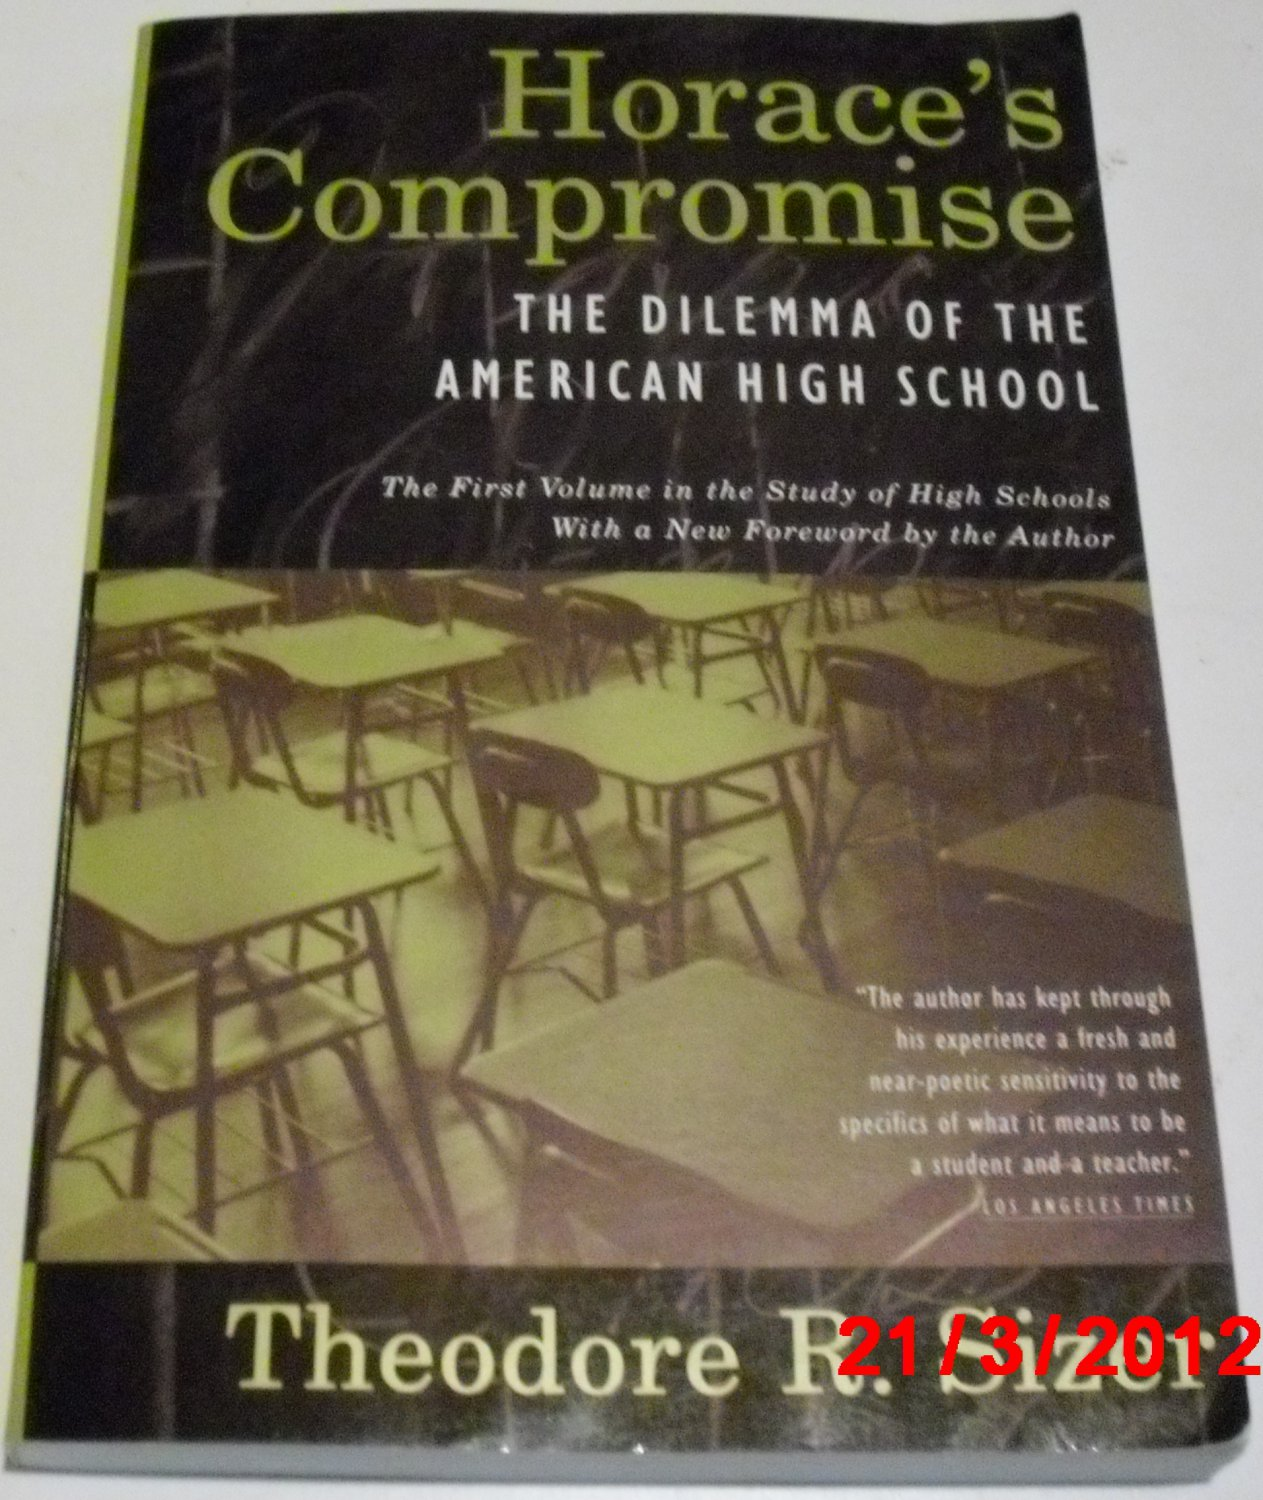 what high school is theodore sizer The new american high school [ted sizer, nancy faust sizer, deborah meier] on amazoncom free shipping on qualifying offers the late theodore sizer's vision for a truly democratic public high school system our current high schools are ill-designed and inefficient.